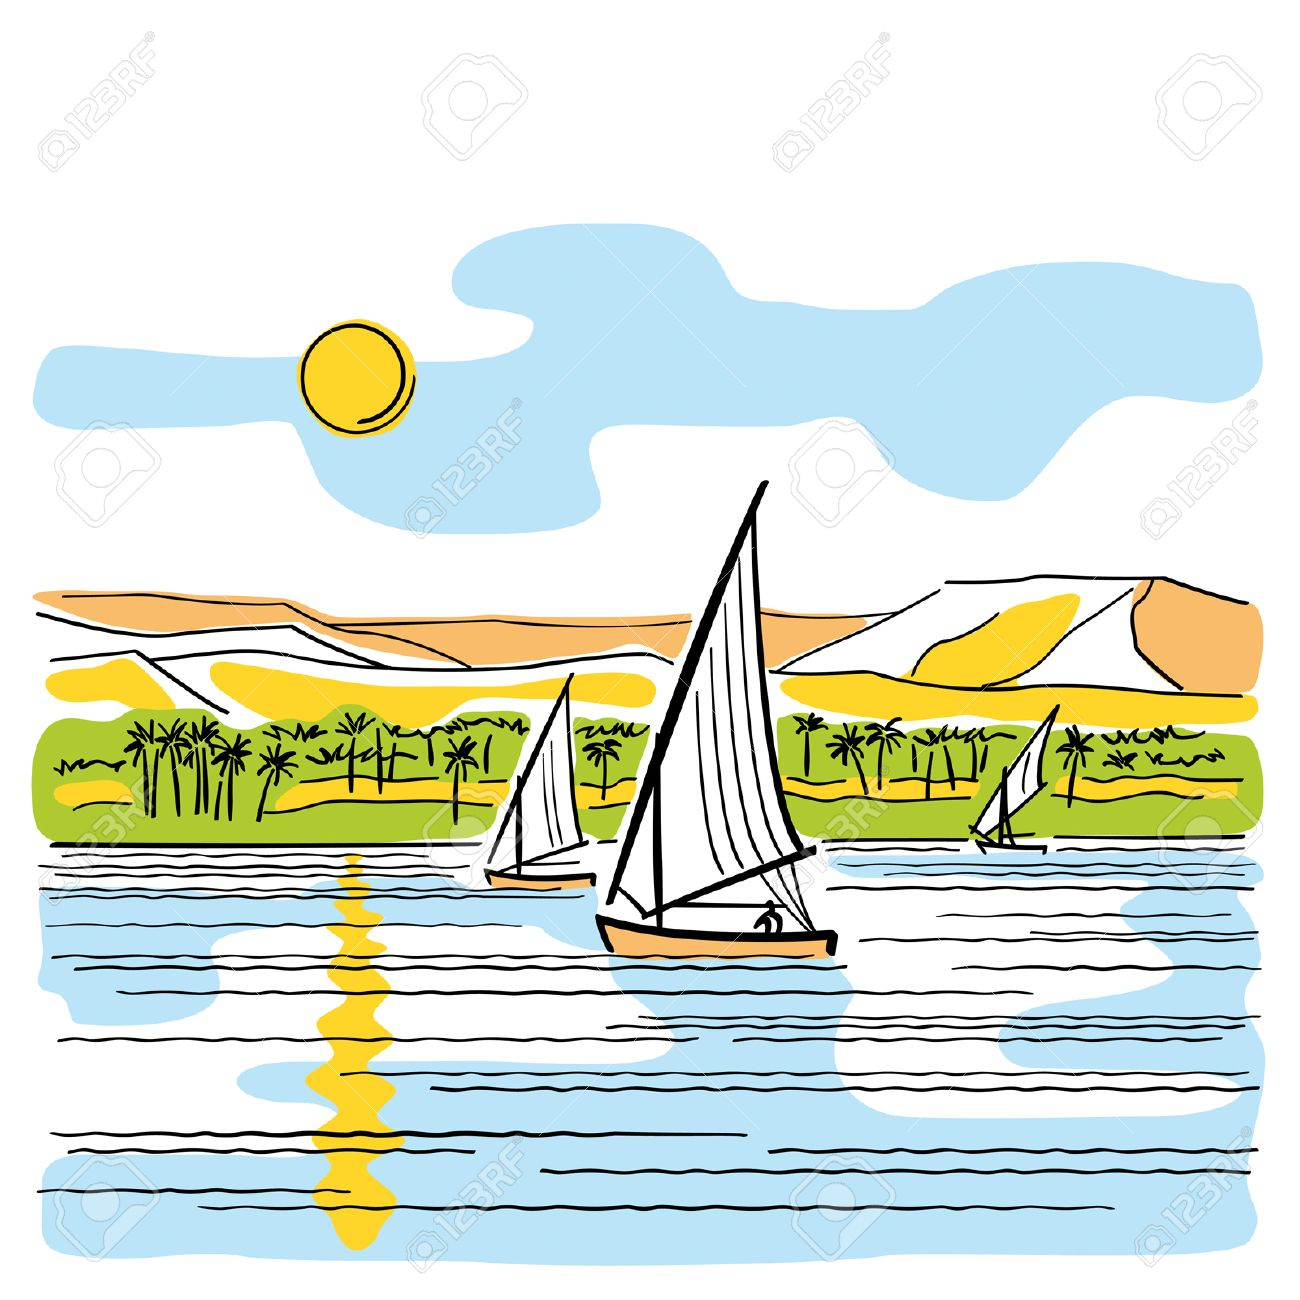 Egyptian clipart nile river, Egyptian nile river Transparent.